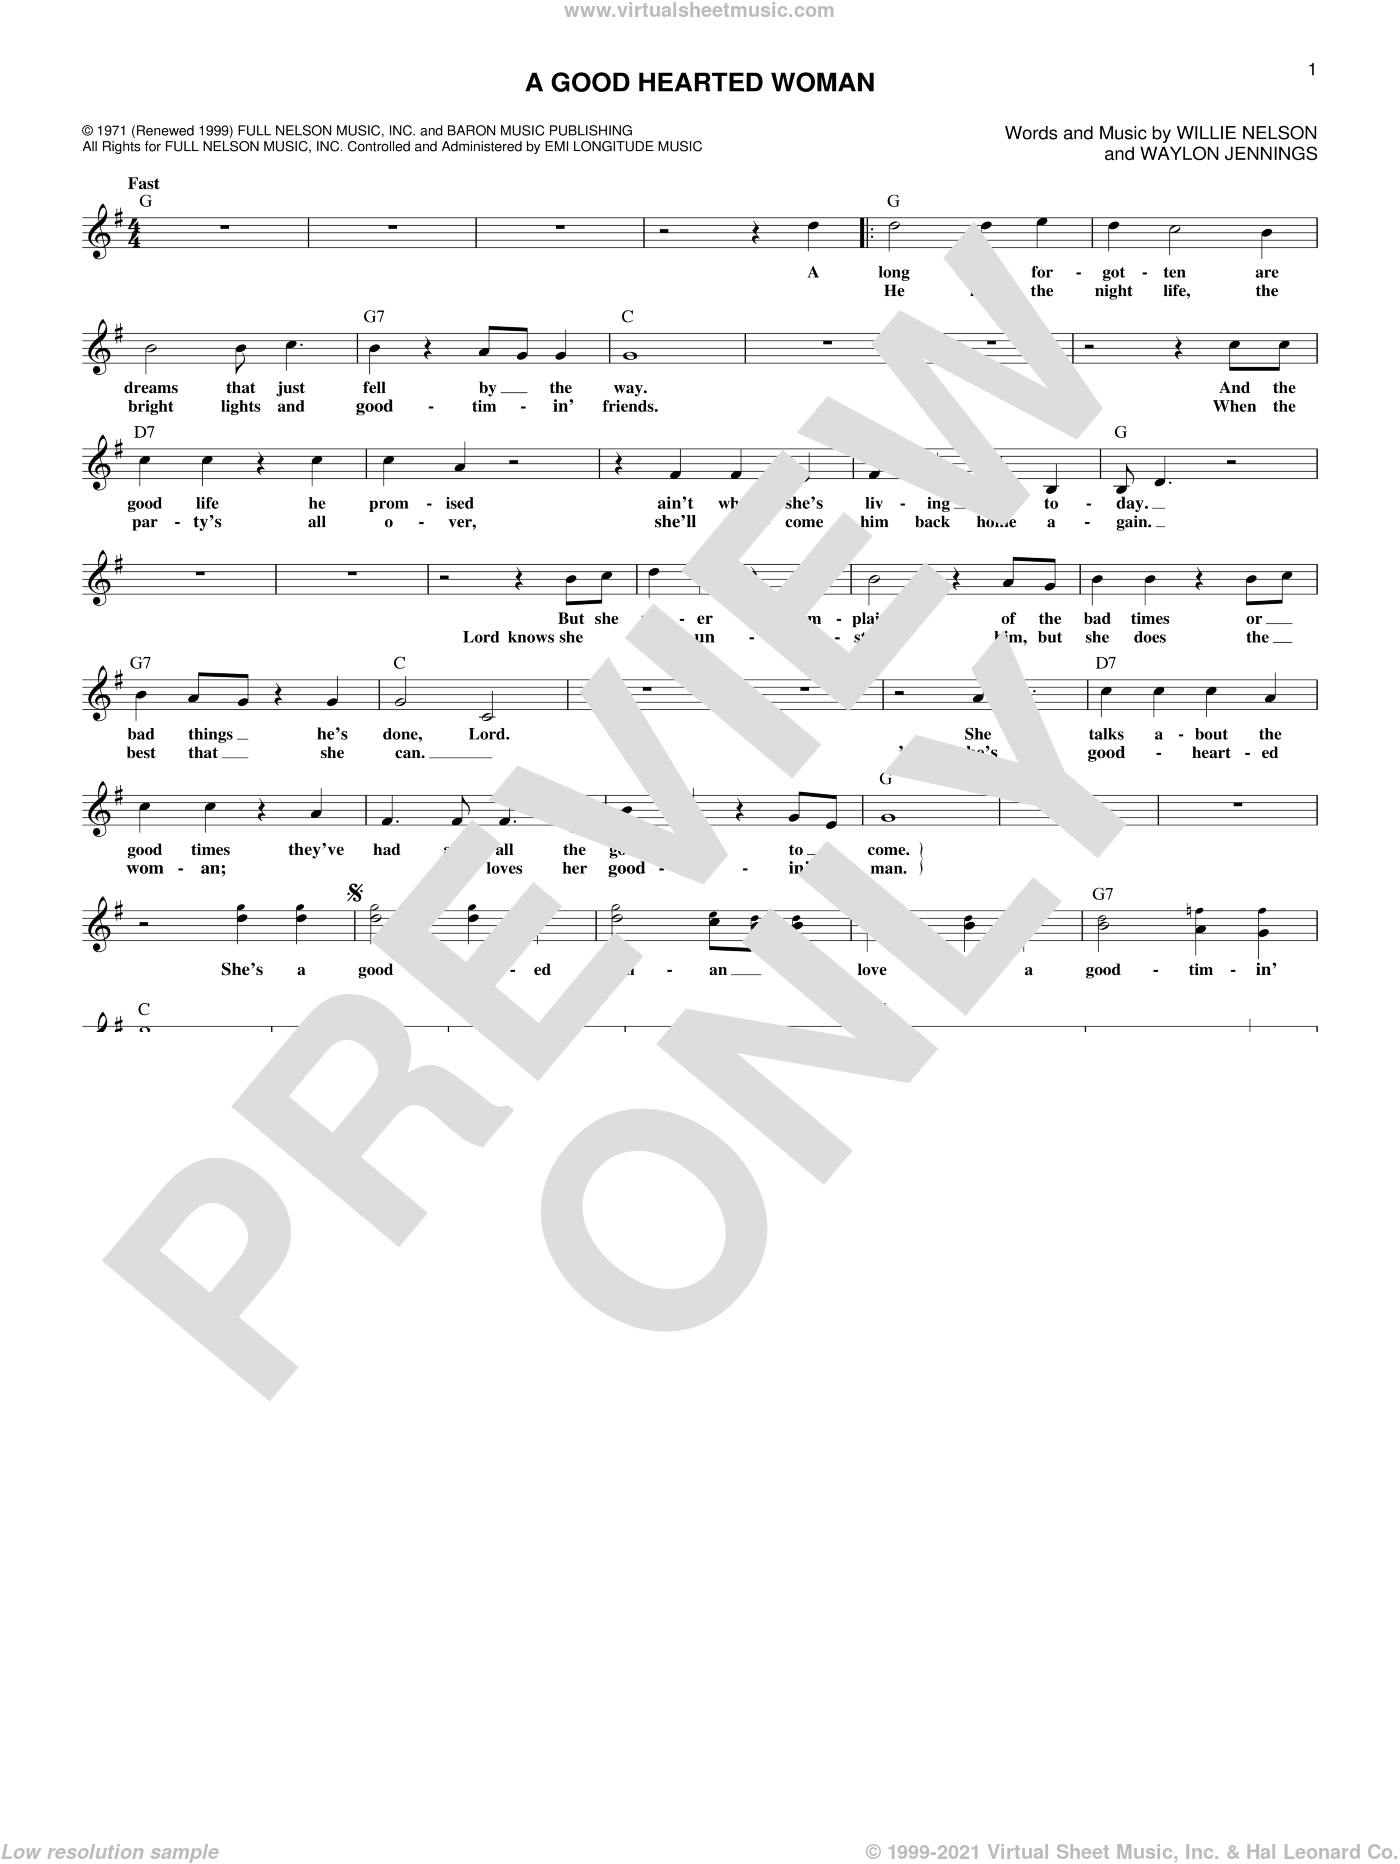 A Good Hearted Woman sheet music for voice and other instruments (fake book) by Willie Nelson and Waylon Jennings. Score Image Preview.